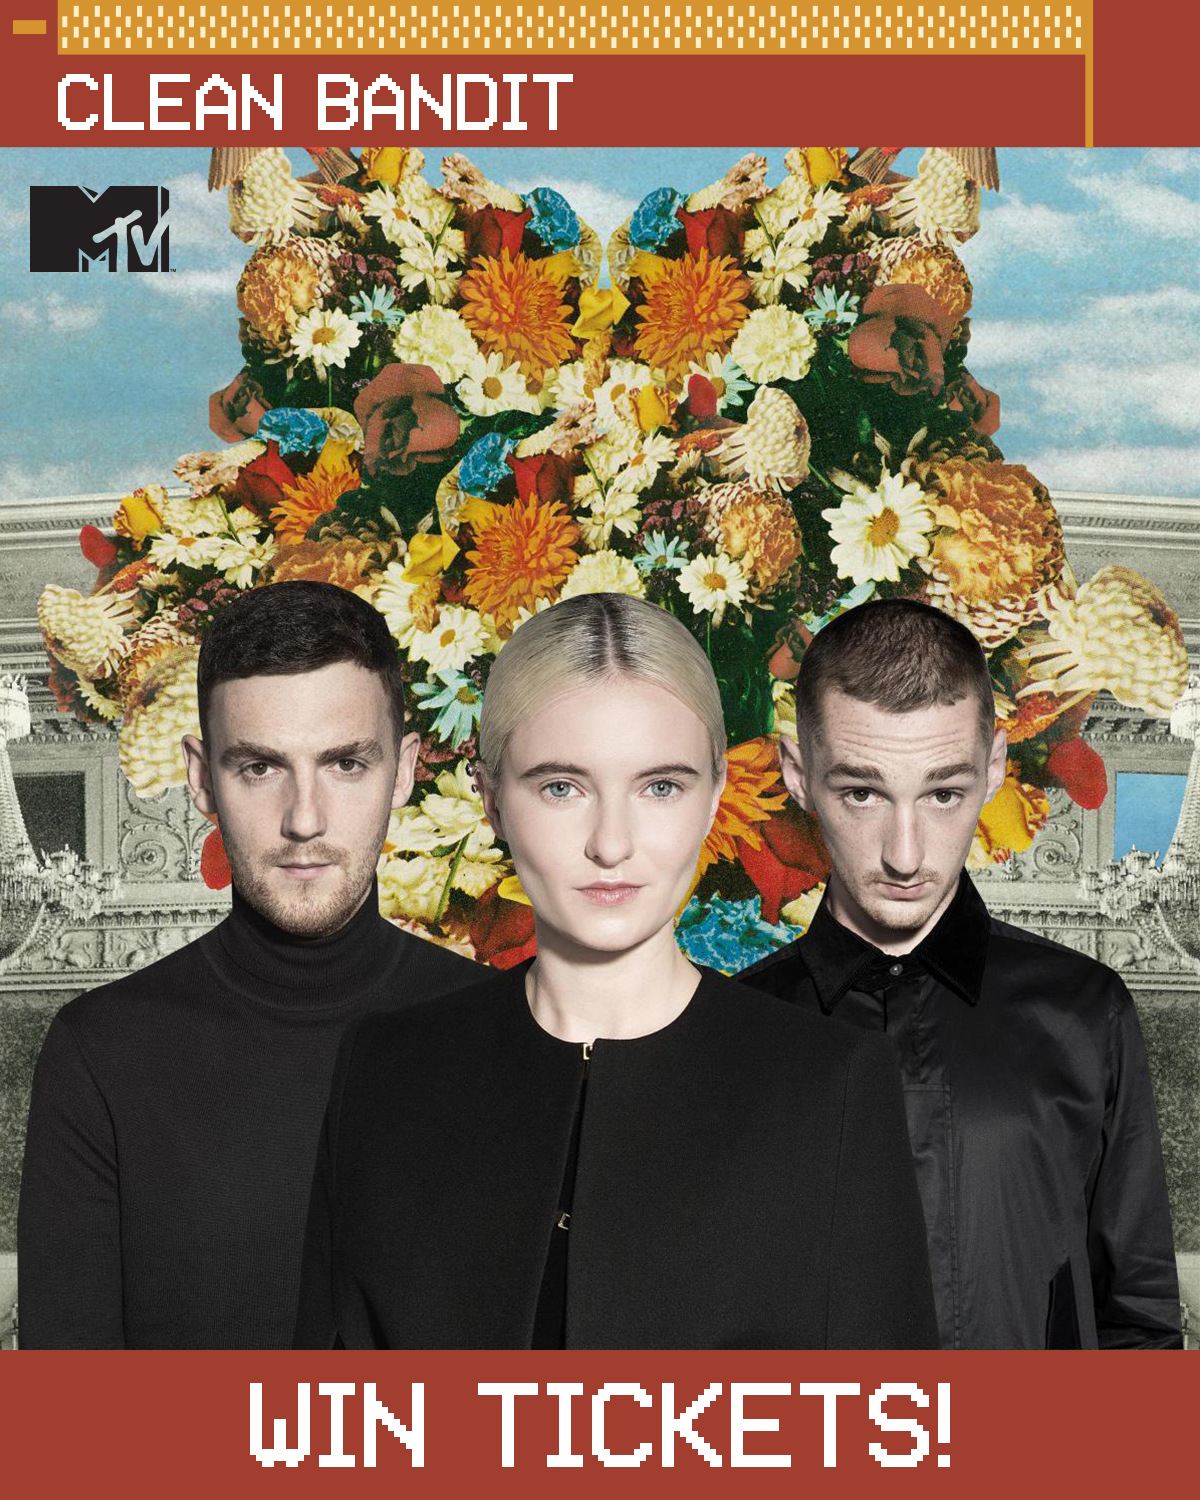 Contest Win Vip Tix Meet And Greet With Clean Bandit In Singapore